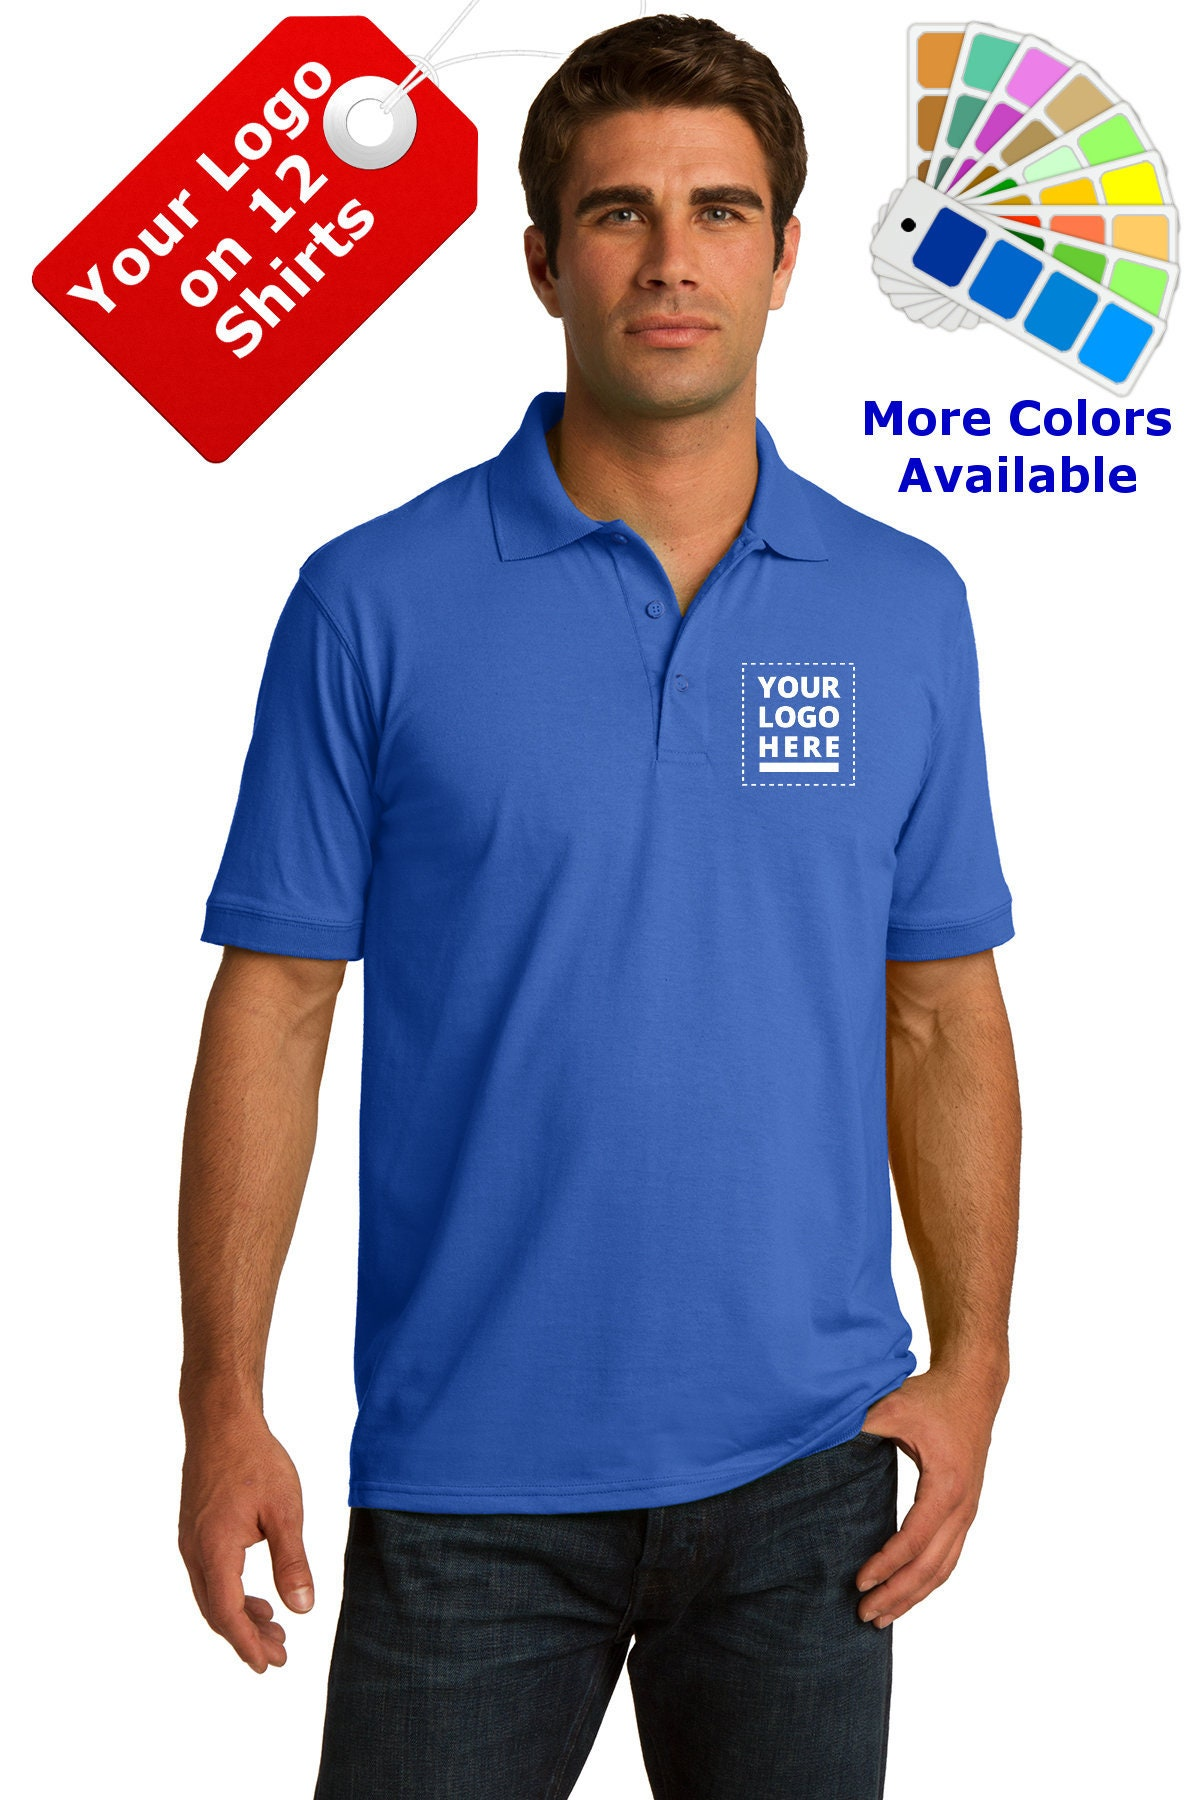 Custom Embroidered Polo Shirts with Company Logo for your Business School Organization or Church